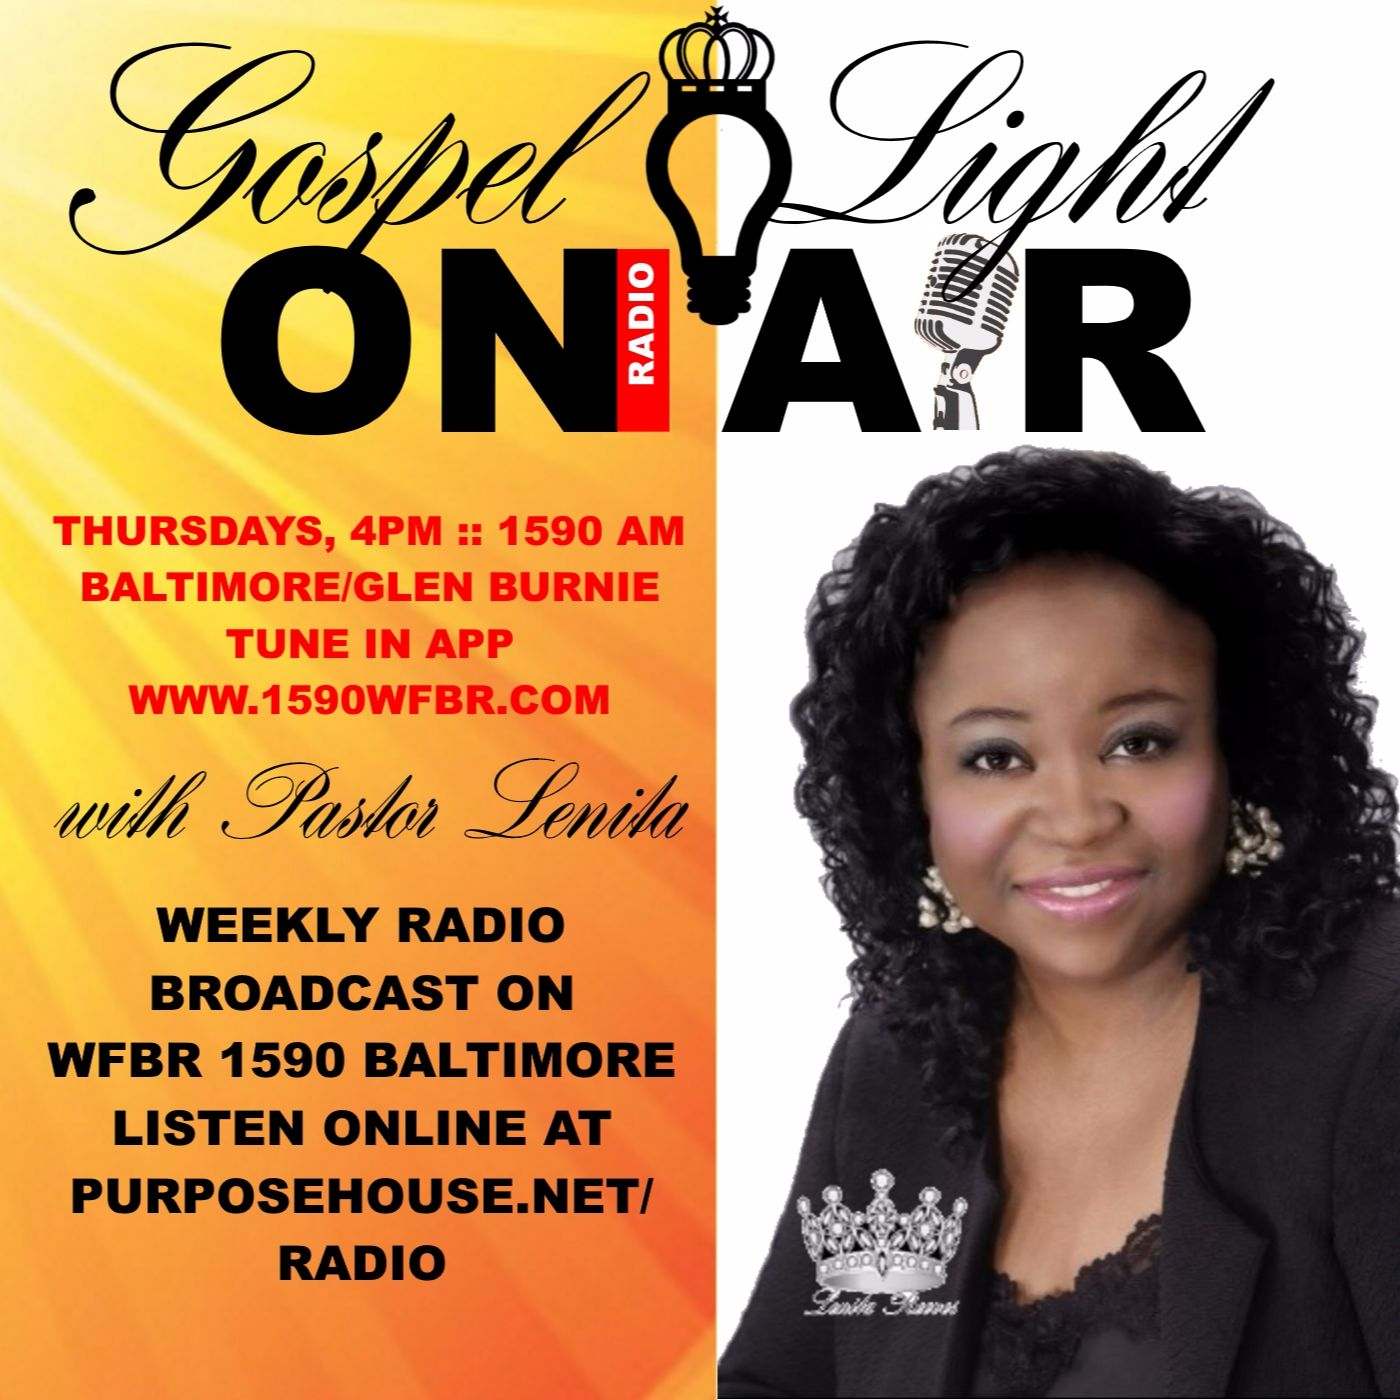 Gospel Light Radio with Pastor Lenita